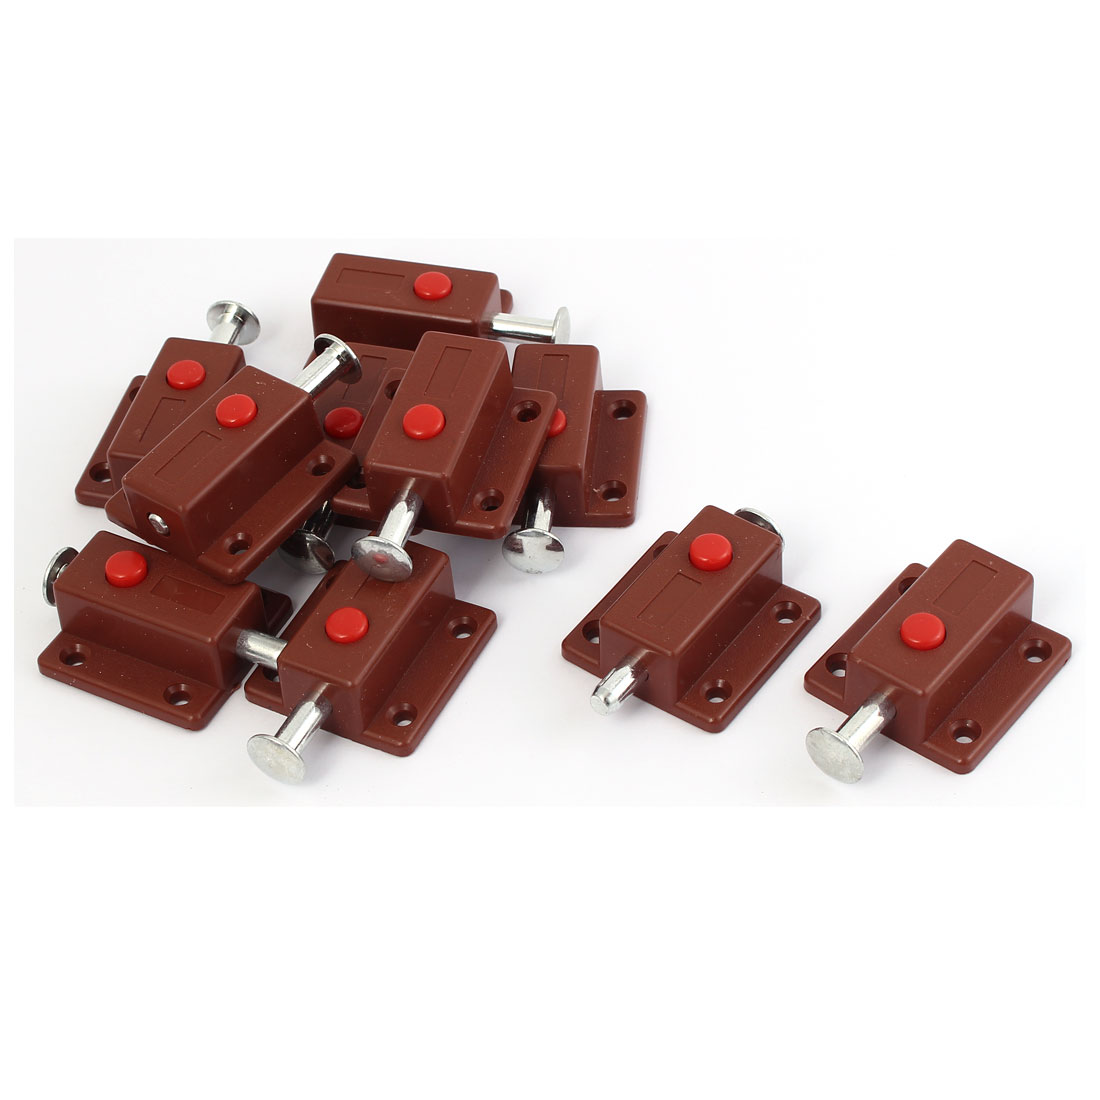 Cupboard Door Button Control Automatic Barrel Bolt Latch Lock Brown 10pcs